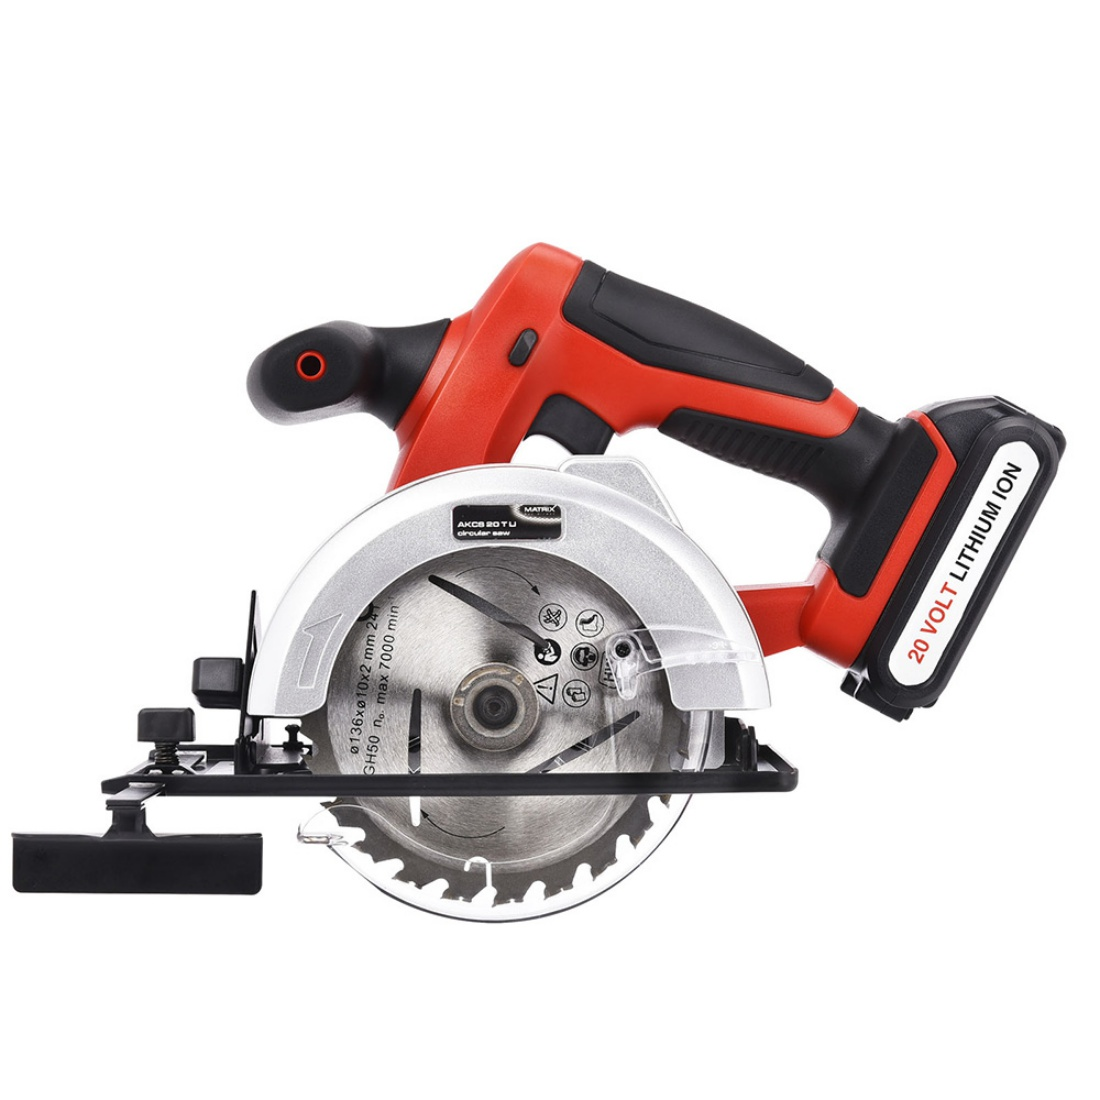 New Matrix 20V Cordless Circular Saw Li-Ion Lithium Electric Power Tool